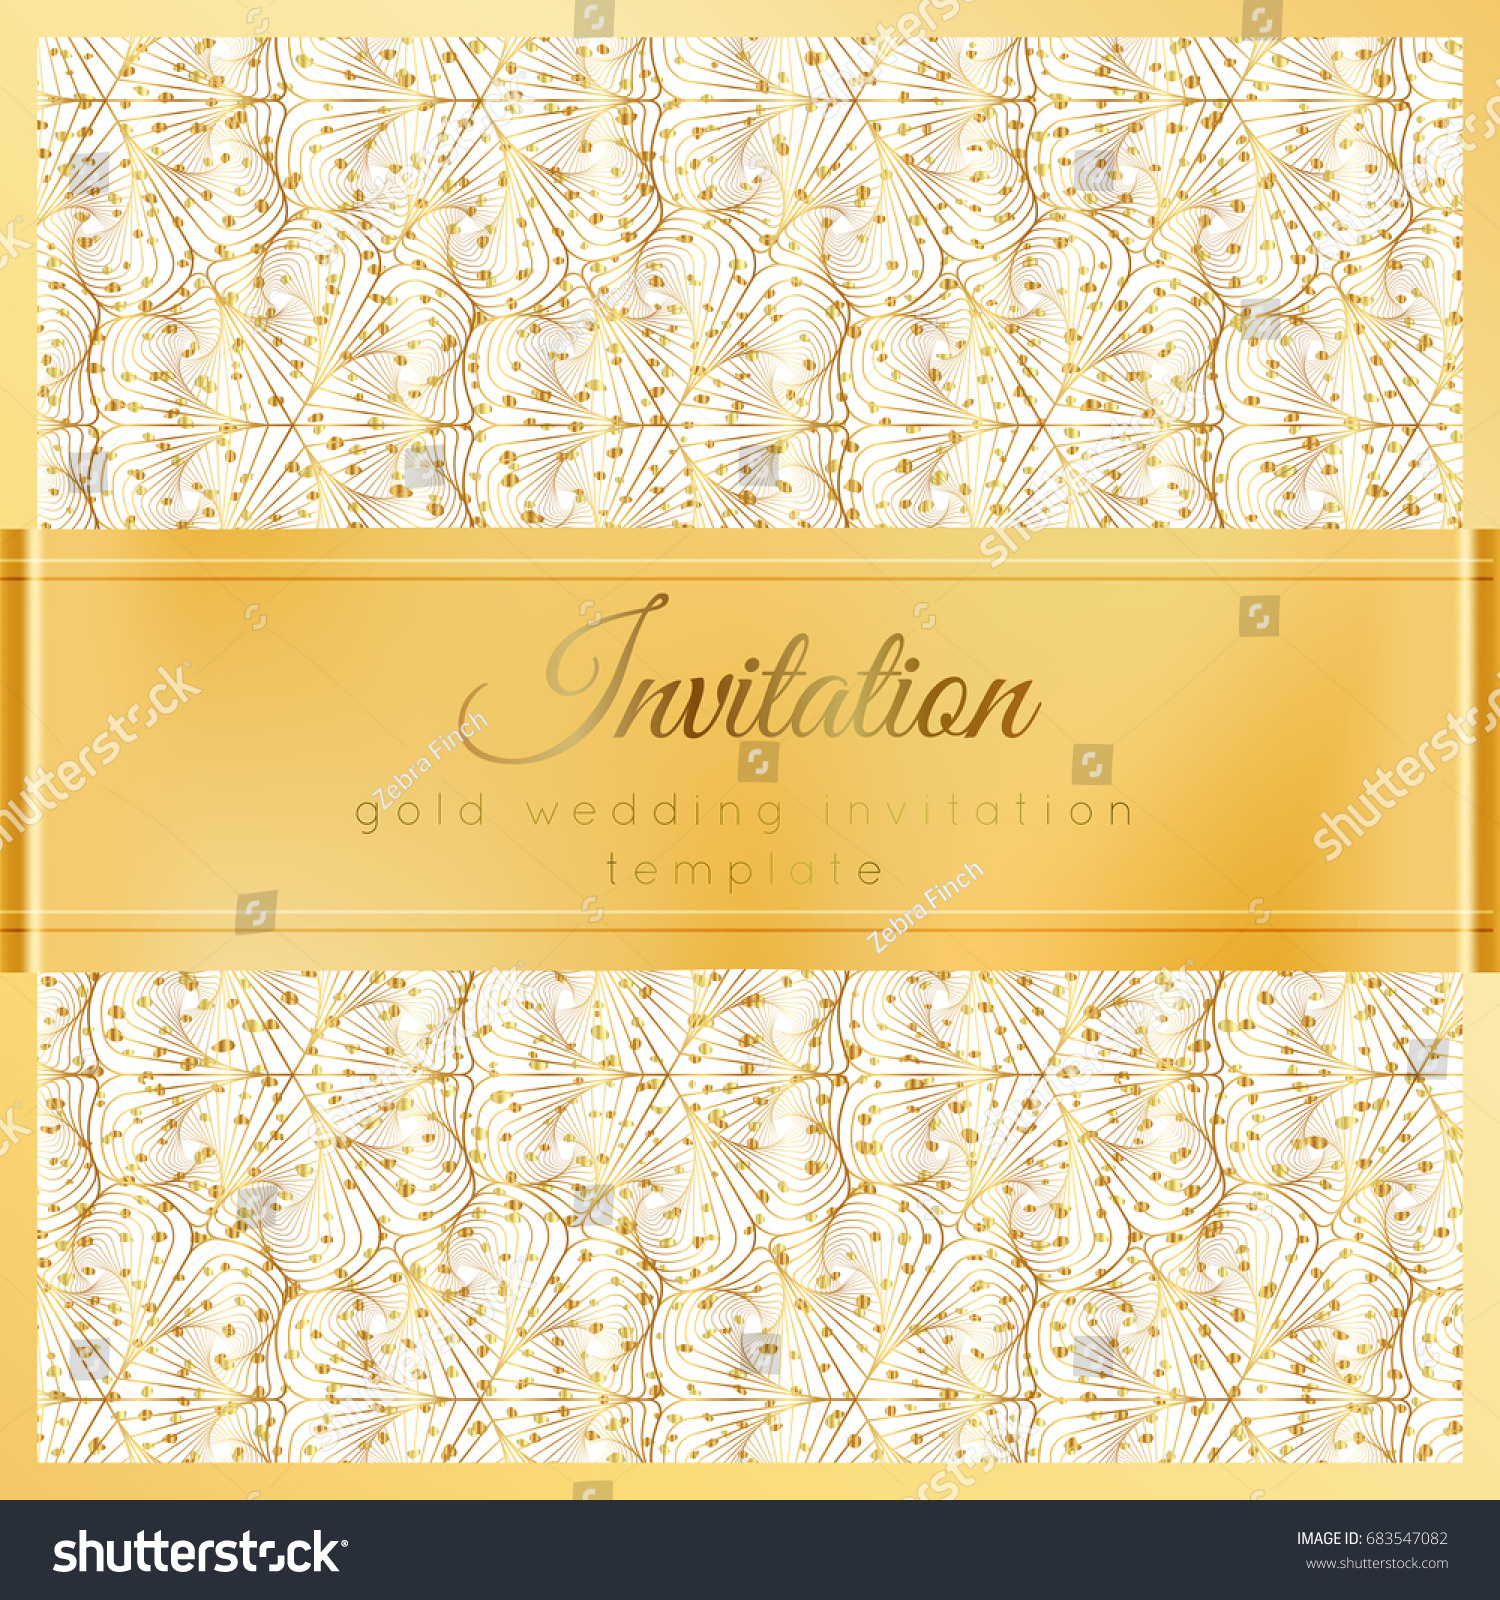 Luxury Wedding Invitation Template Gold Shiny Stock Vector